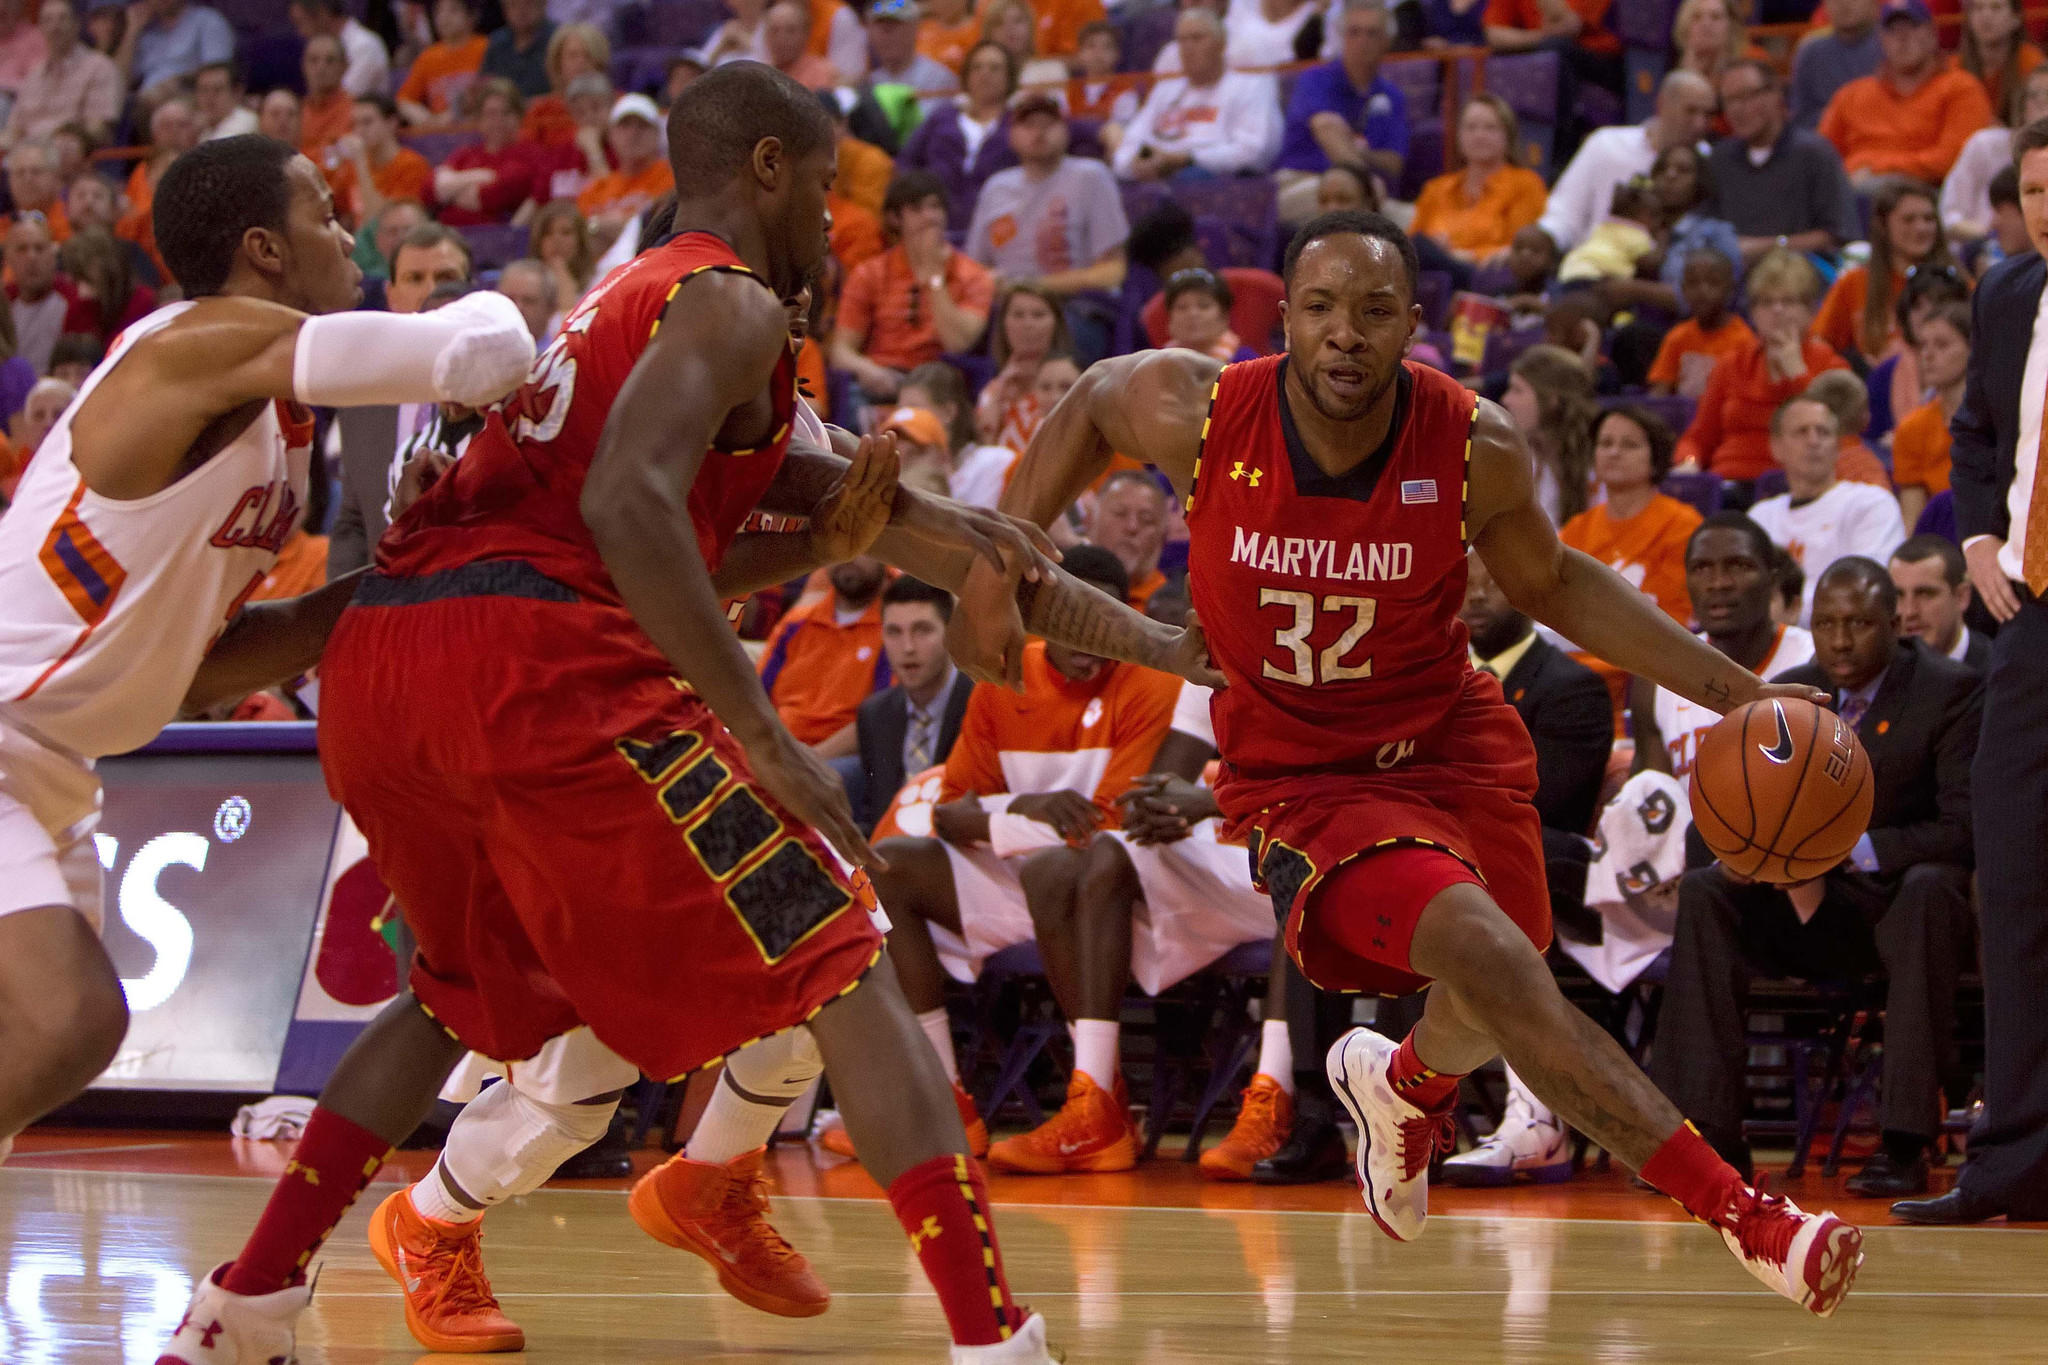 Maryland's Dez Wells dribbles down court against Clemson in the first half.